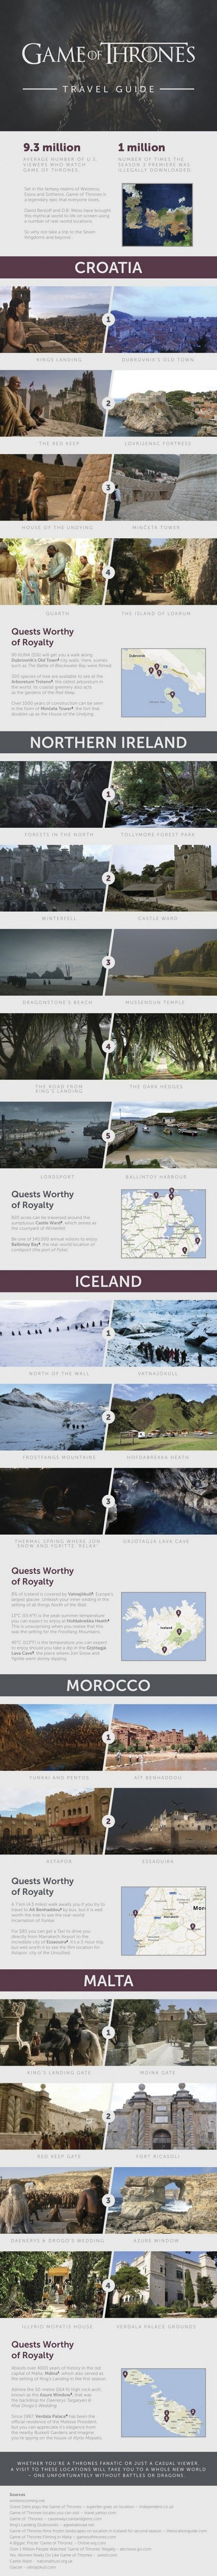 Game of Thrones Travel Guide Infographic Yes please, I would like to go to all of the Game of Thrones place.